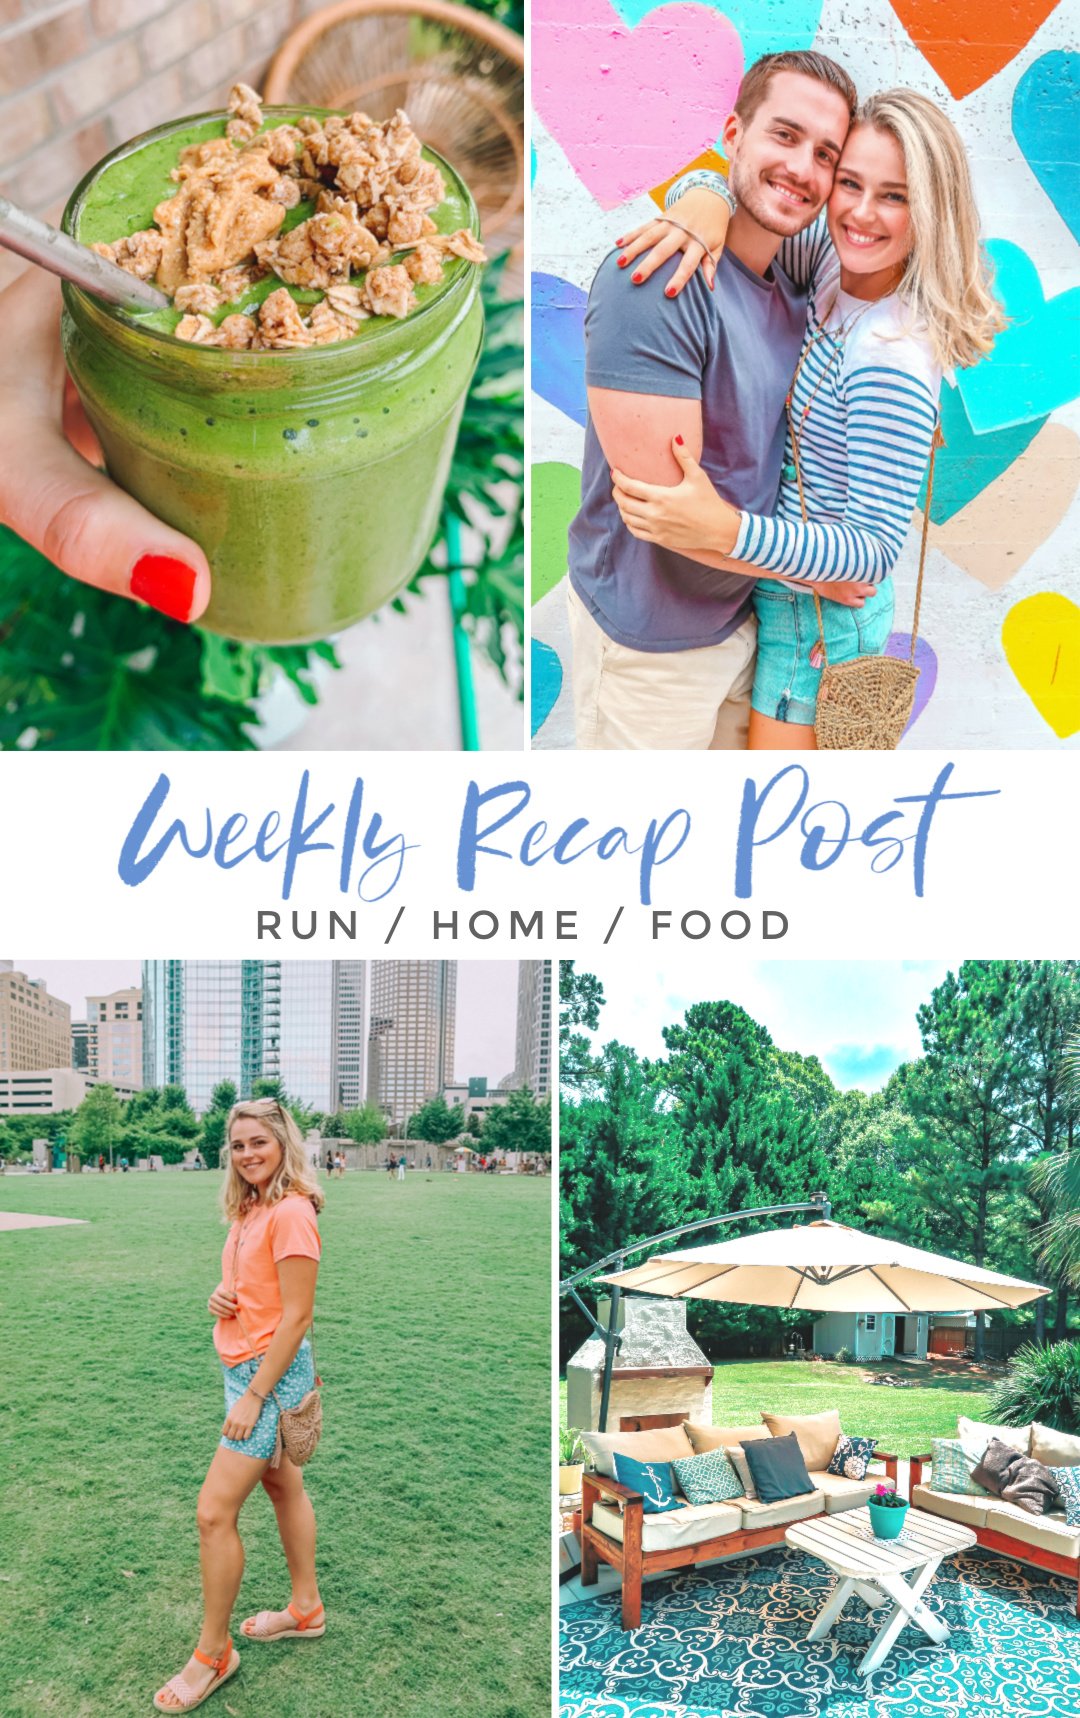 lifestyle blog, home decor, fashion, food, smoothie, gluten free, dairy free, green juice, healthy living, lifestyle, fun, life, relationships, home decor, family, candle making, healthy food, Charlotte nc, family, 4th off July